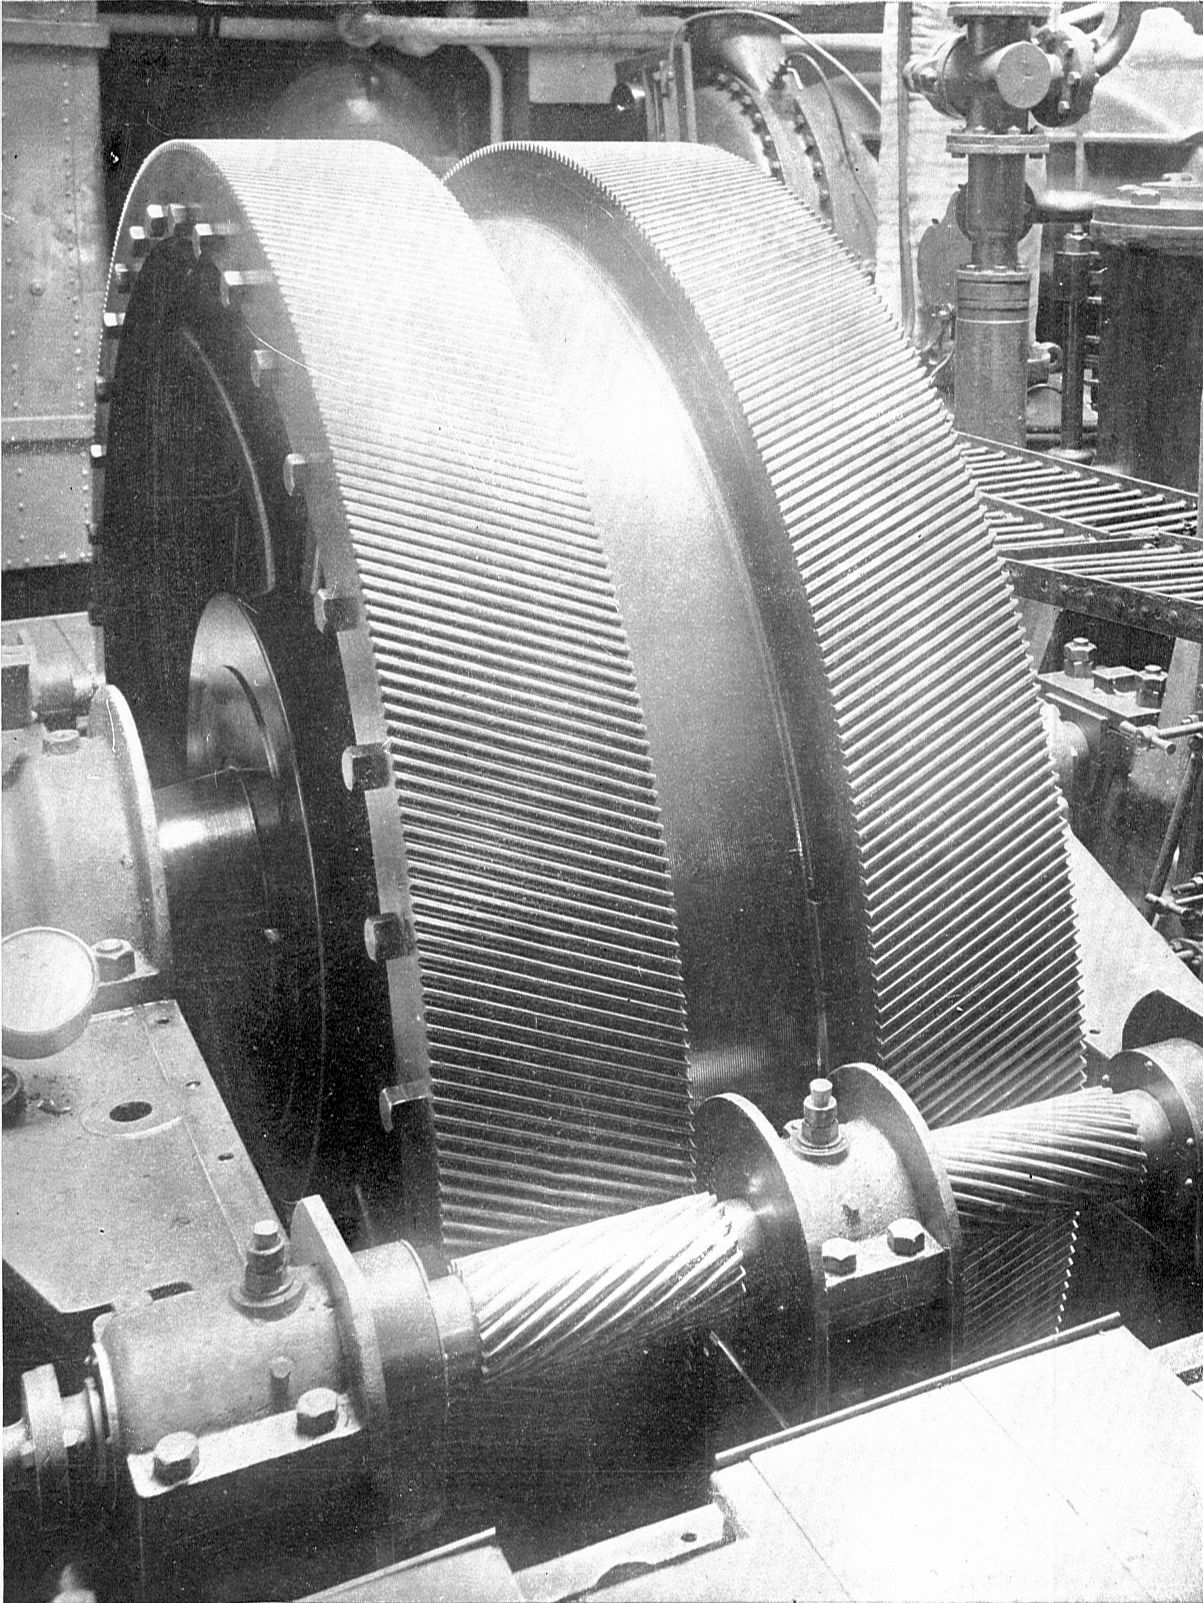 Ss United States Engine Room: File:Parsons Helical Wheel Gearing (Rankin Kennedy, Modern